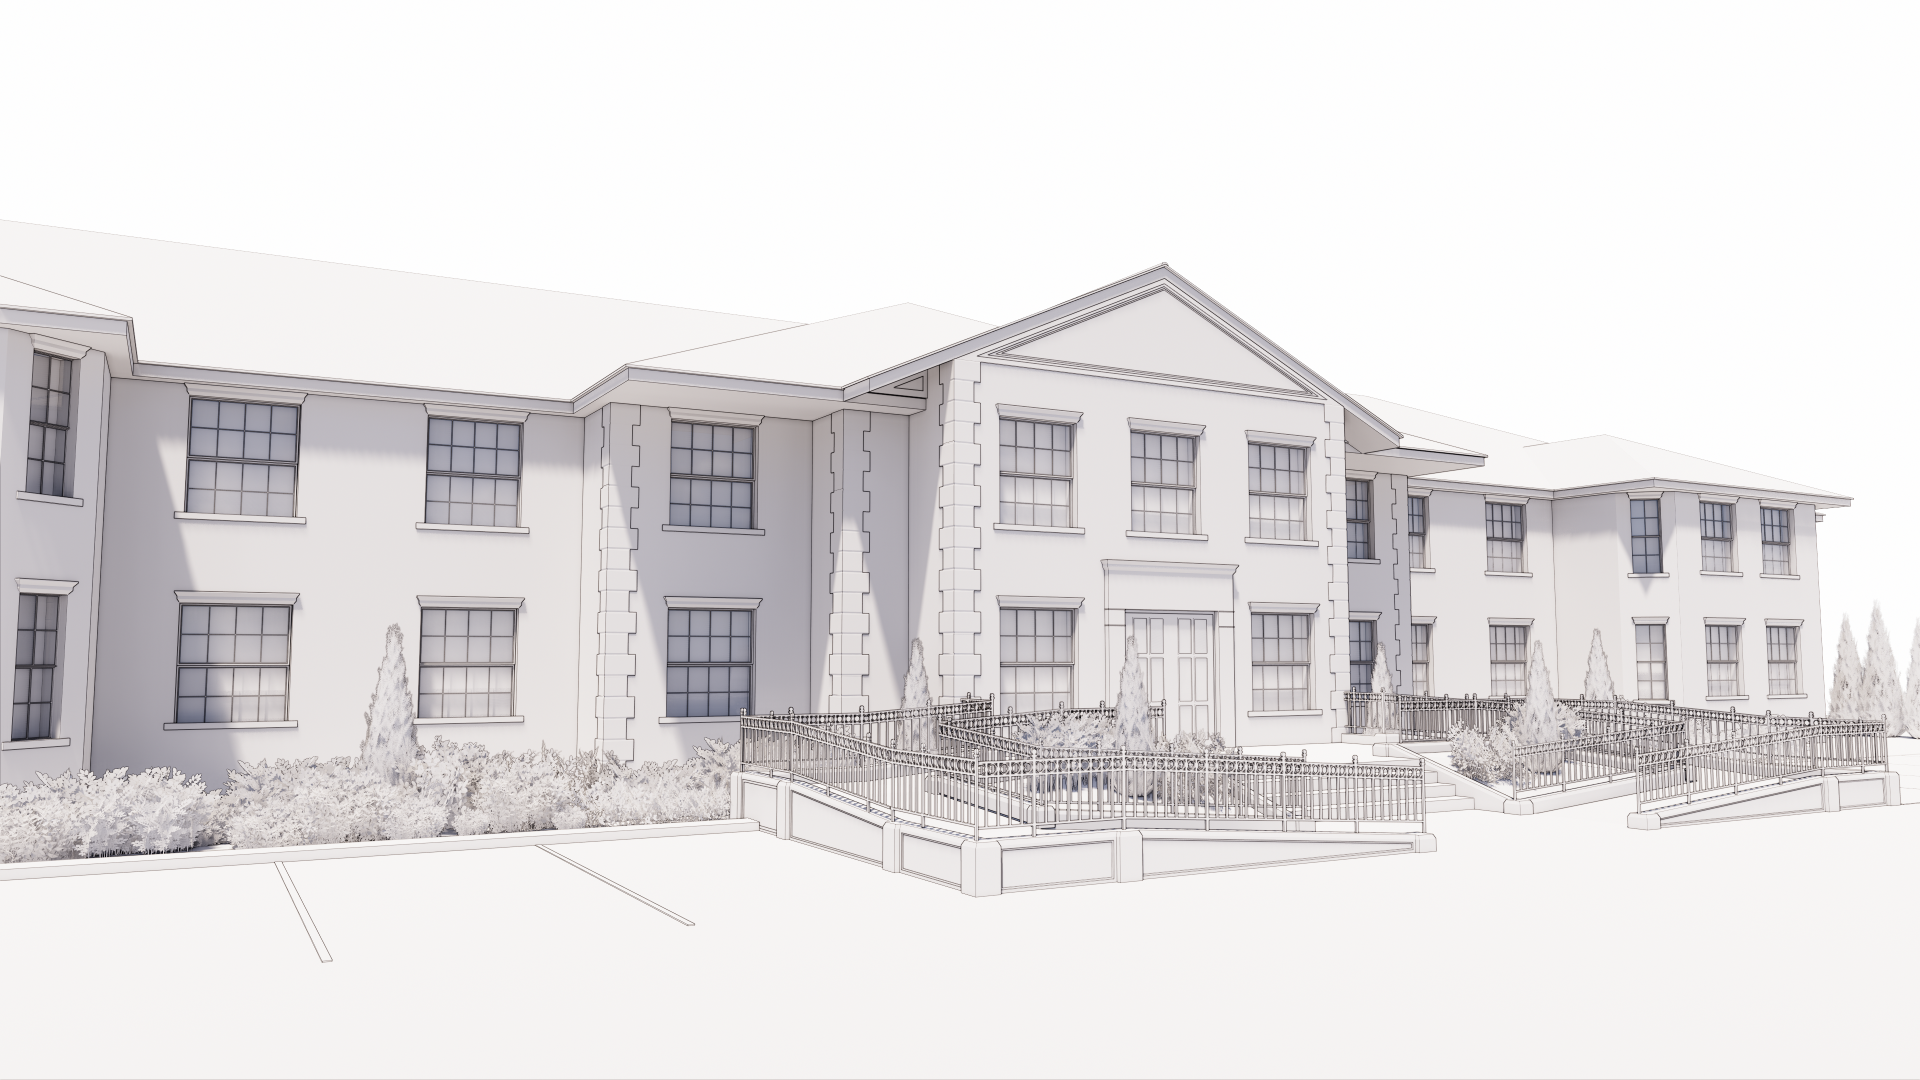 Design of Lauriston House for Kyn